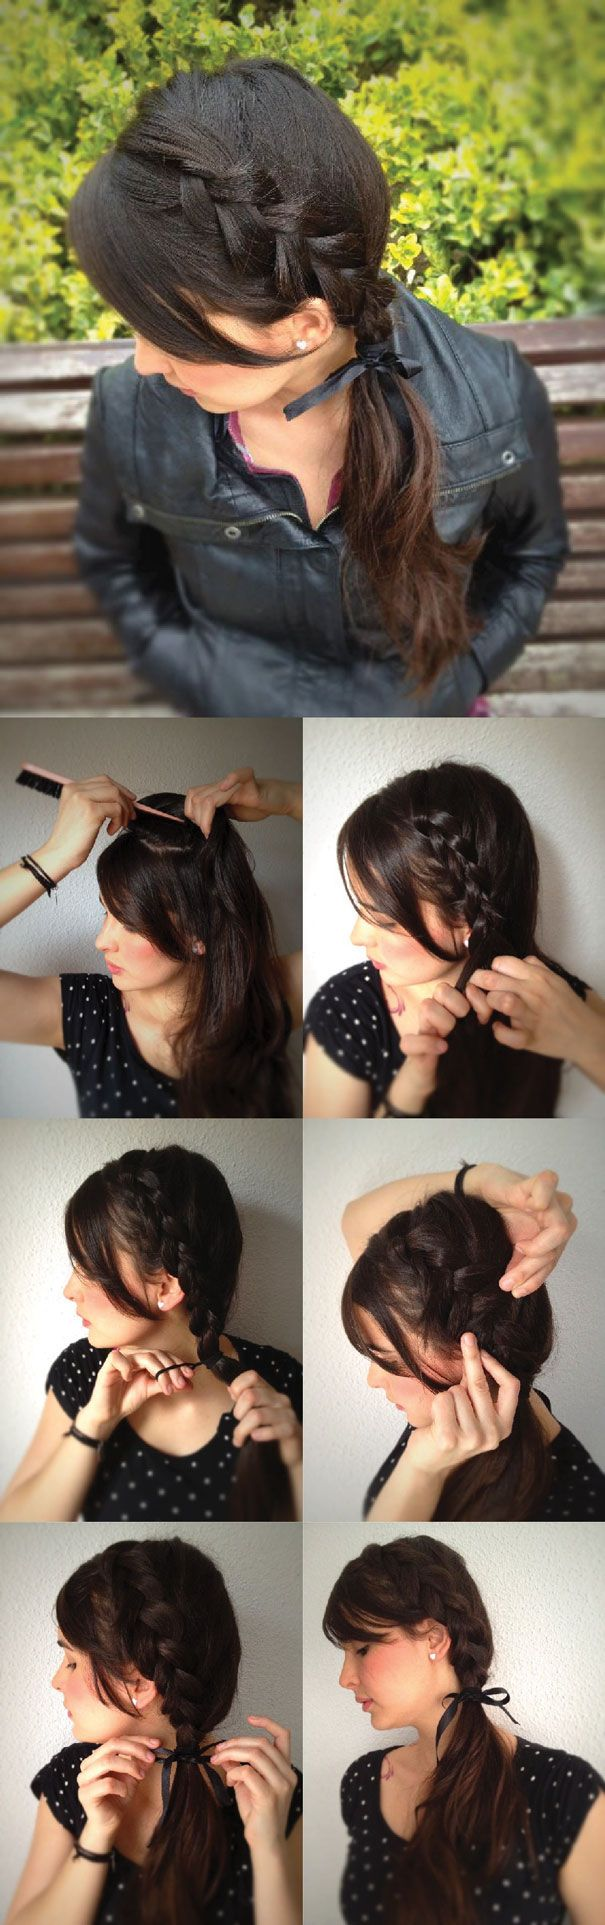 : SIDE BRAID